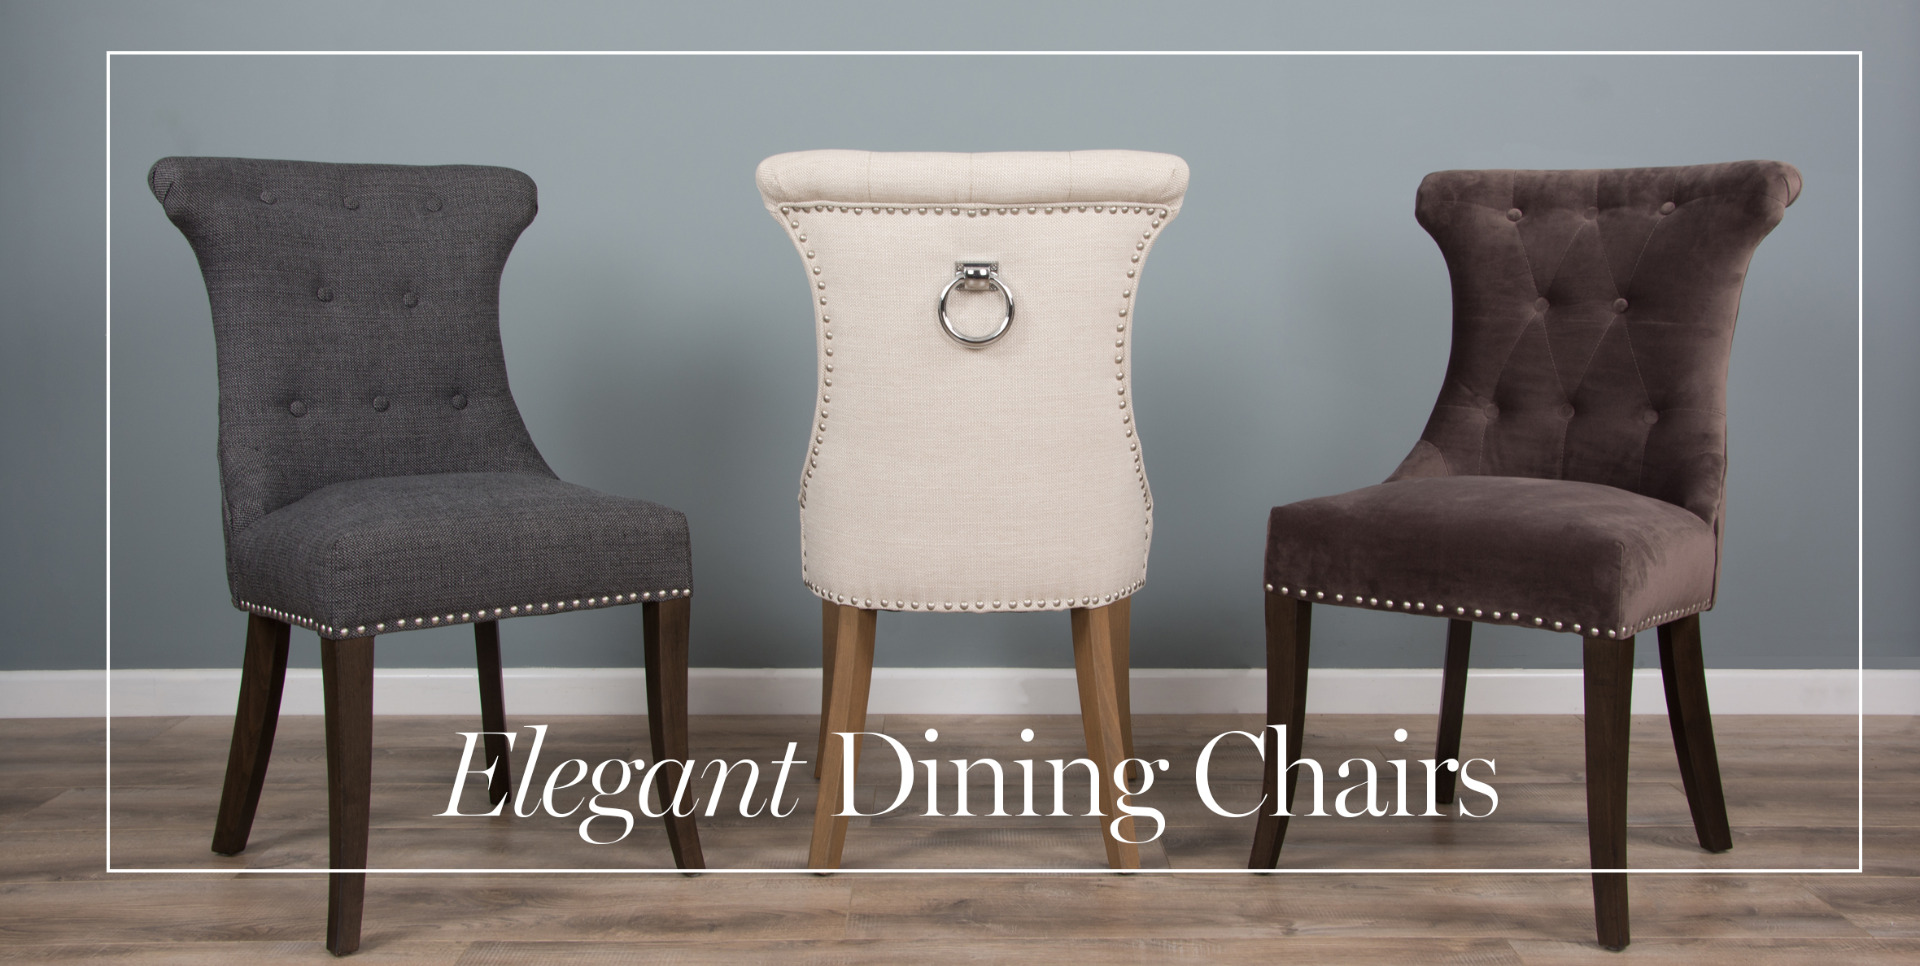 https://www.sustainable-furniture.co.uk/dining-room-furniture/dining-chairs/upholstered-chairs